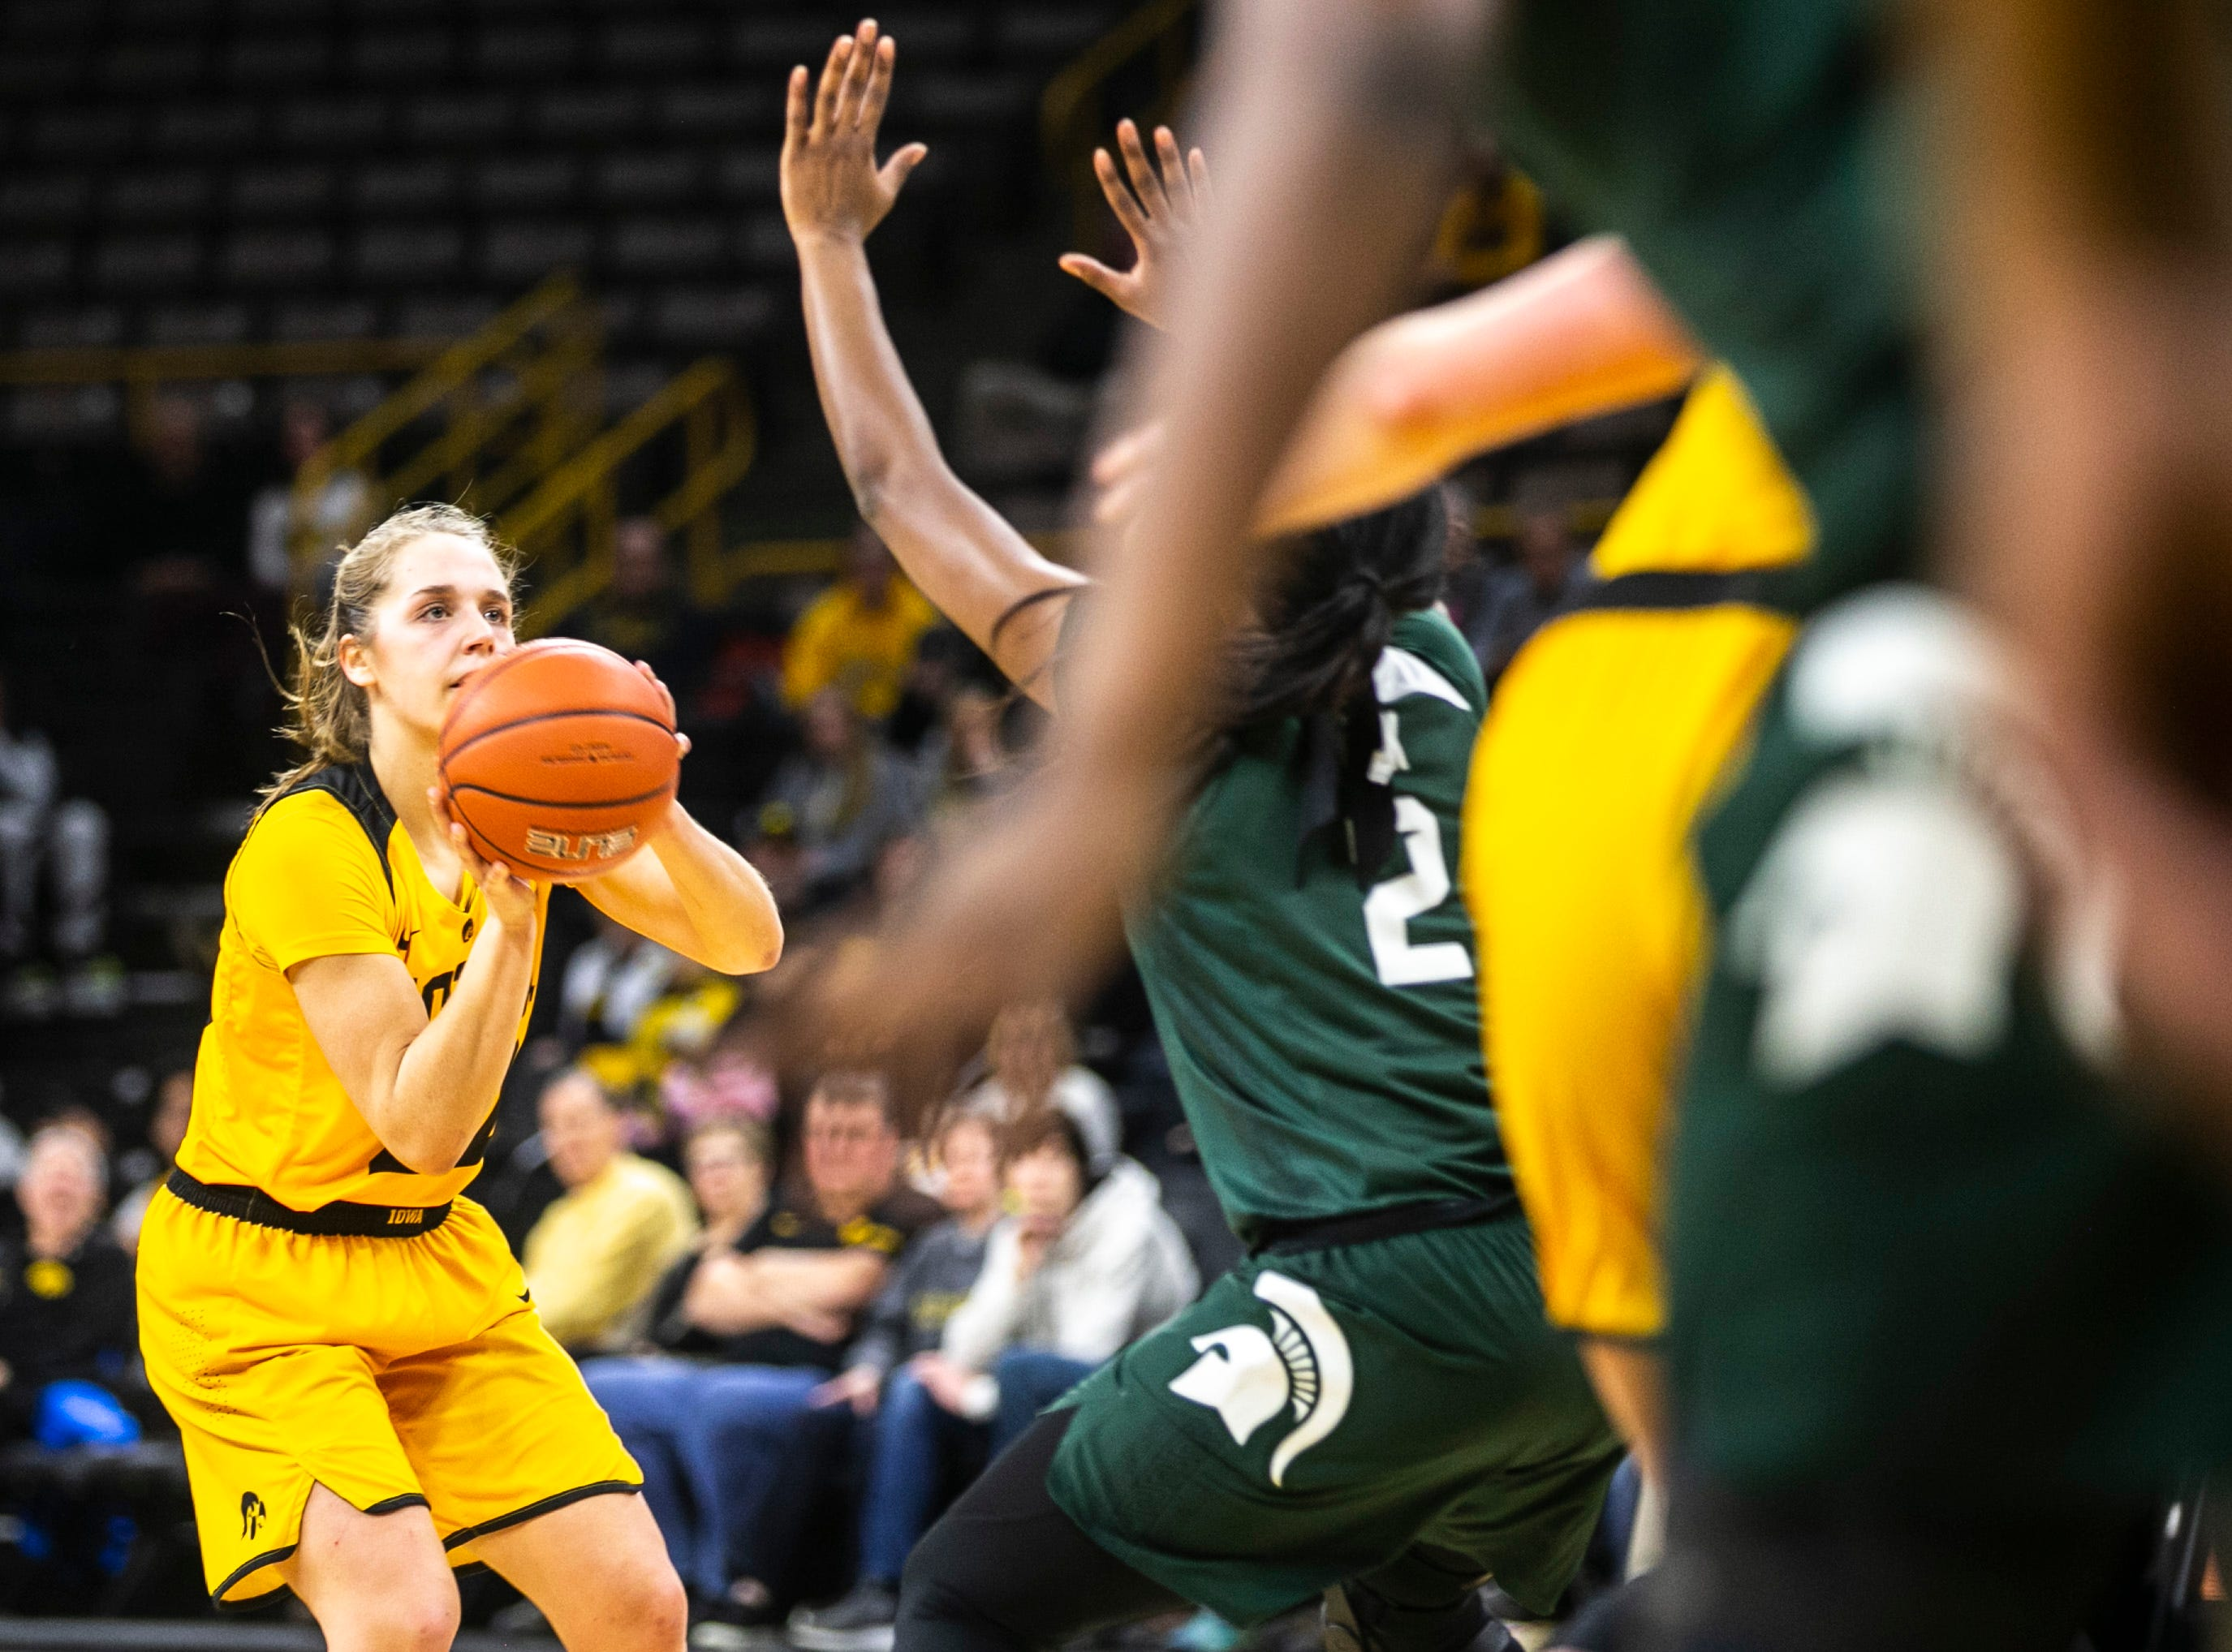 Iowa guard Kathleen Doyle (22) attempts a basket during a NCAA Big Ten Conference women's basketball game on Thursday, Feb. 7, 2019 at Carver-Hawkeye Arena in Iowa City, Iowa.